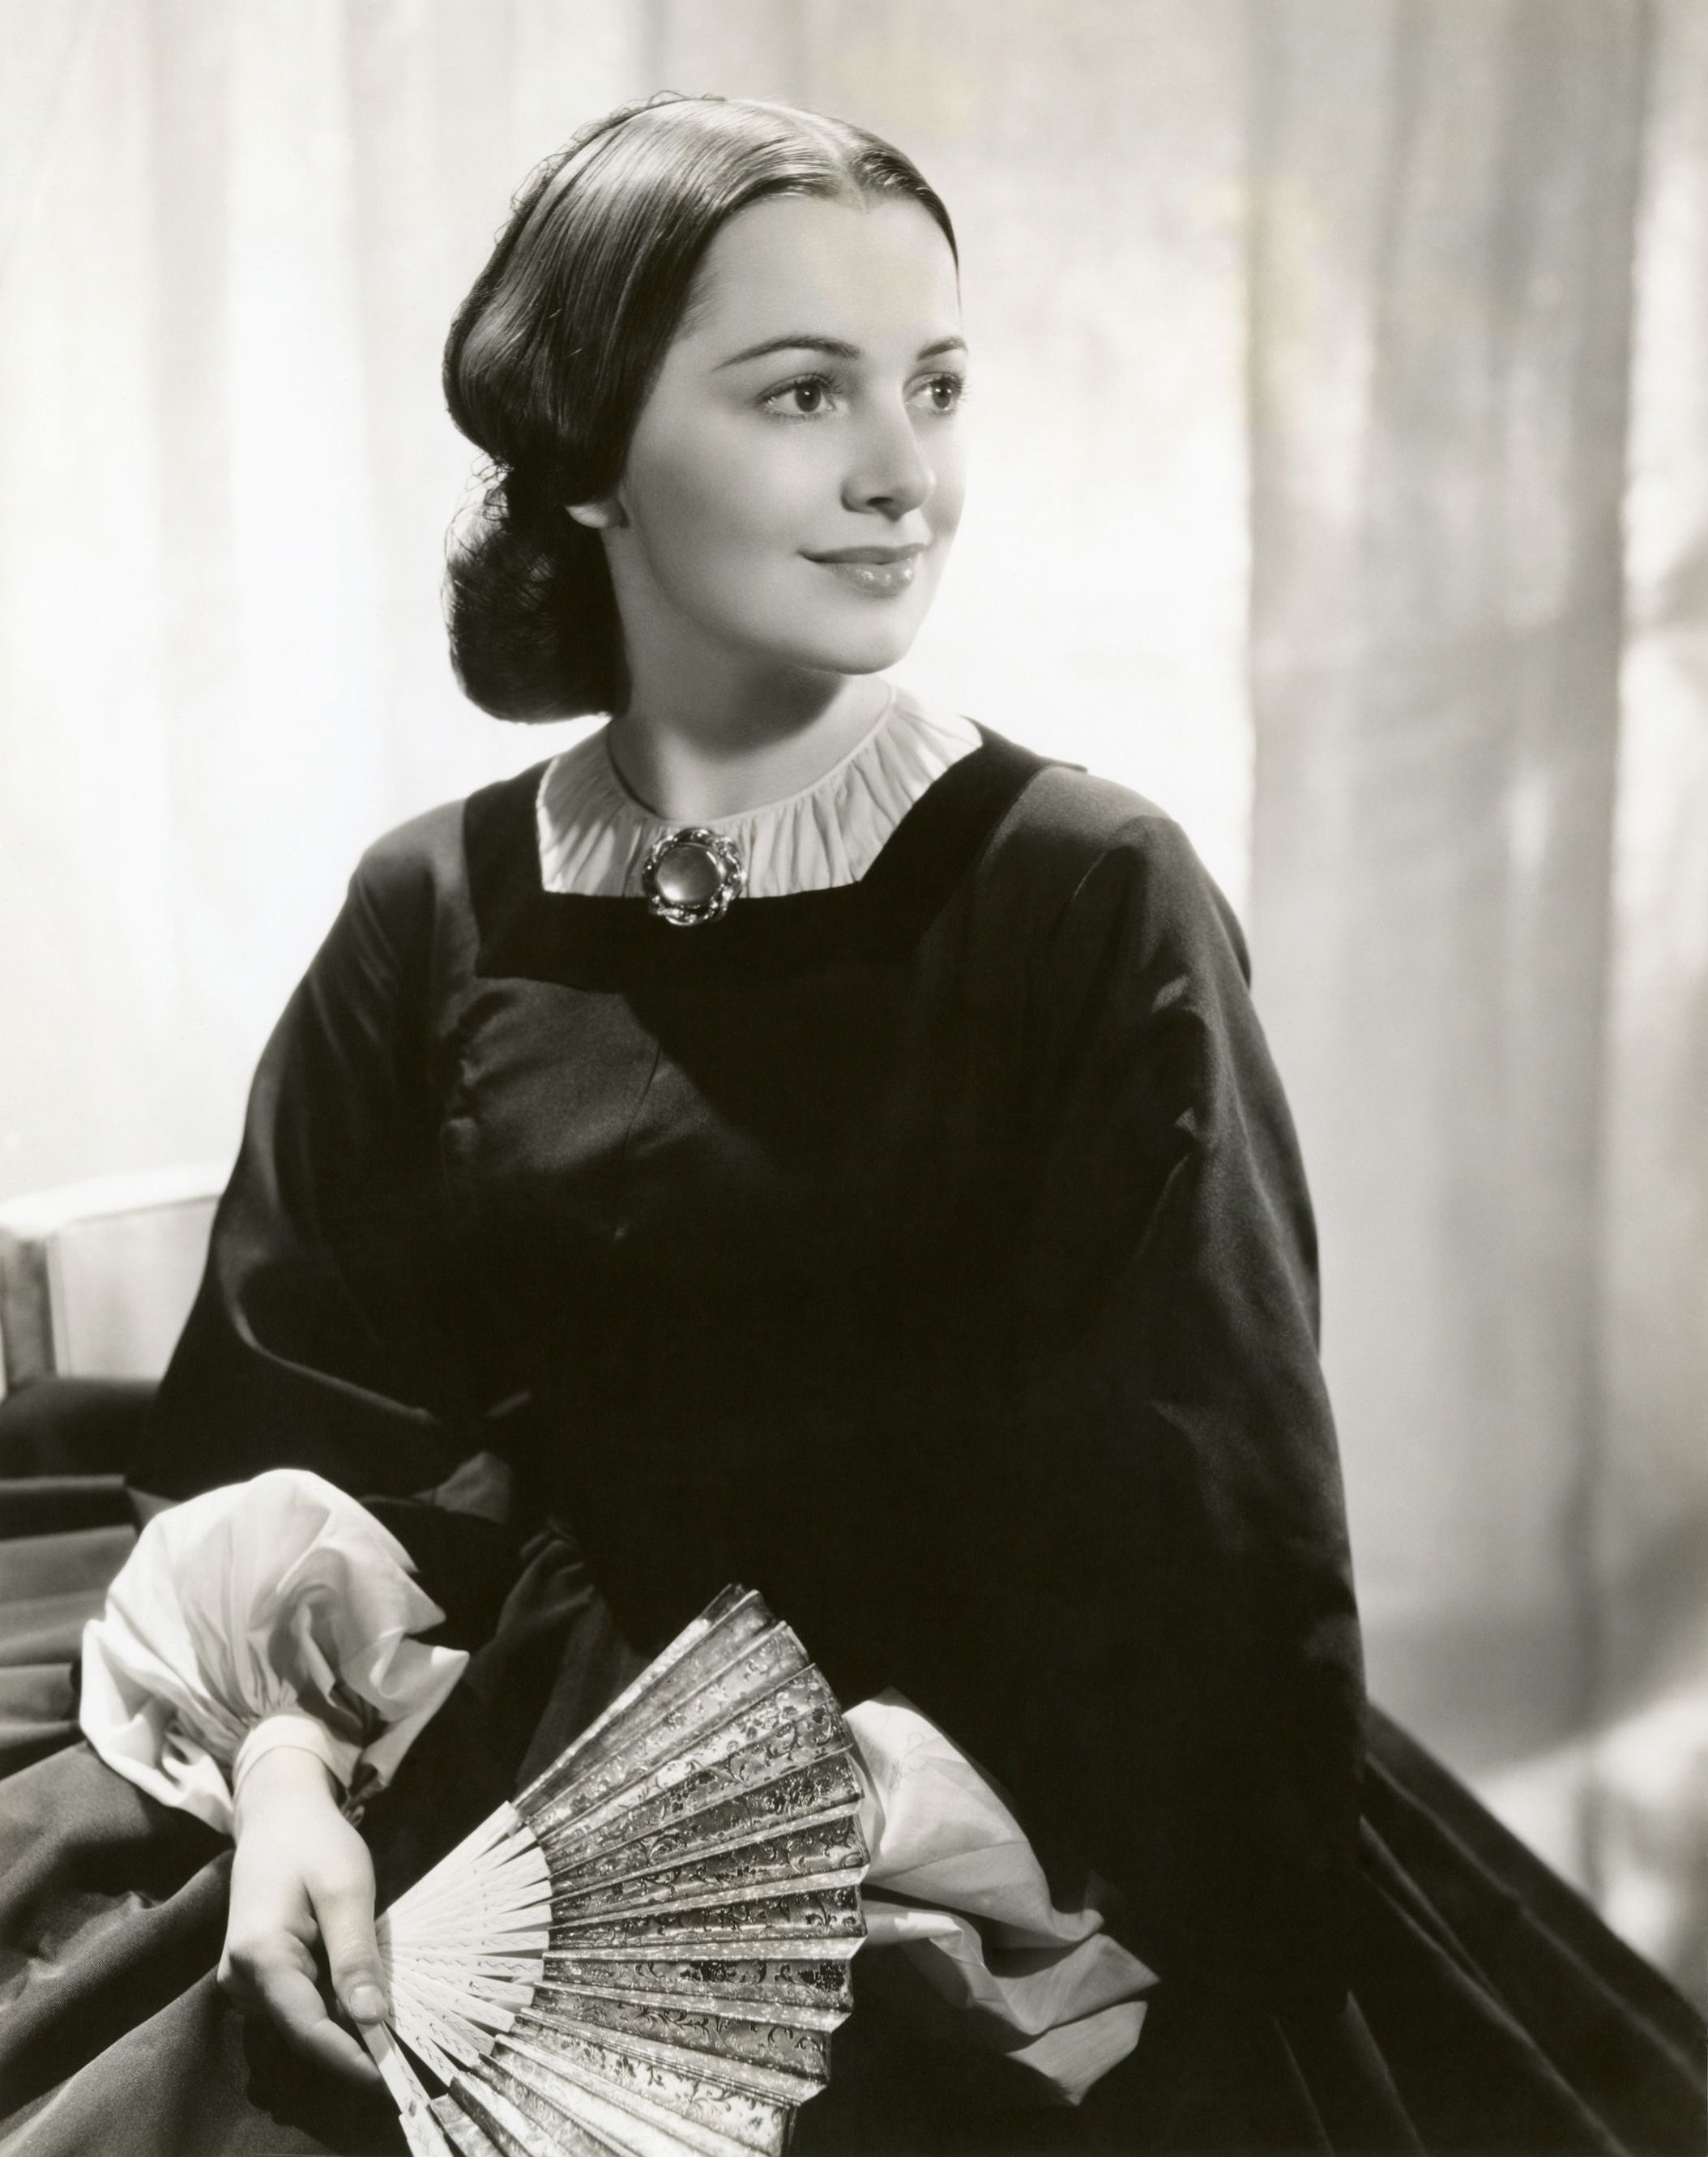 Olivia de Havilland (born 1916 (naturalized American citizen